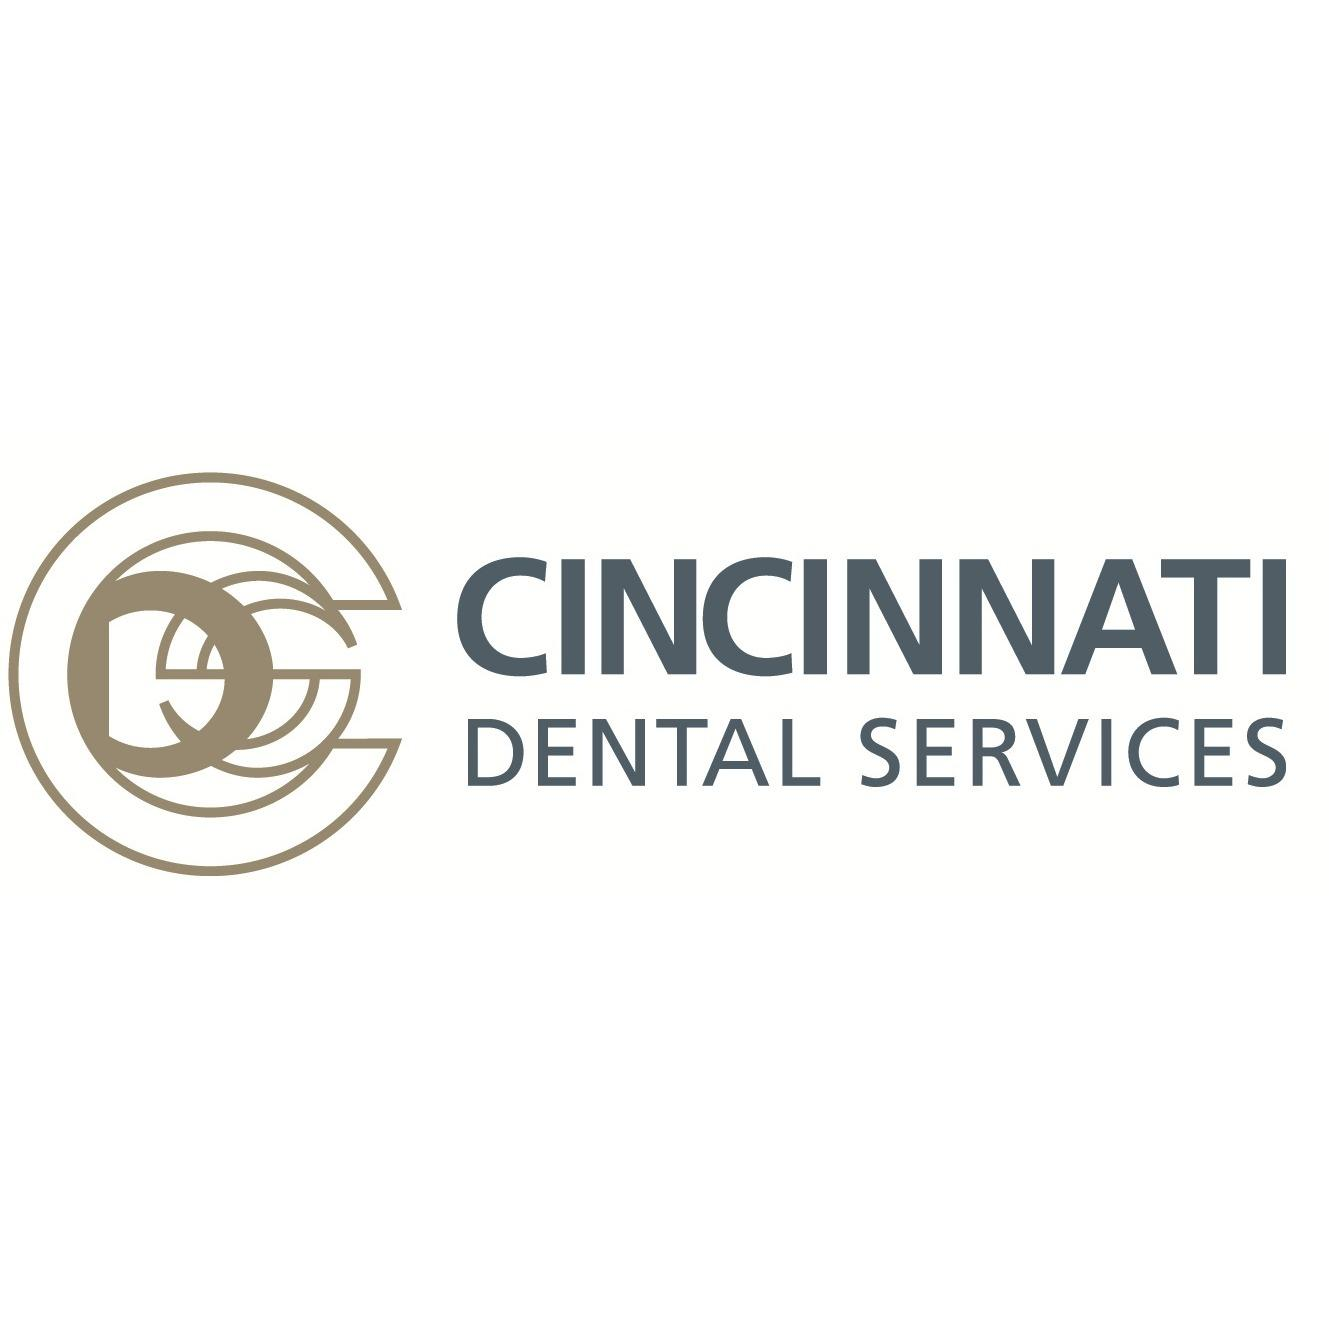 Richard D. Kruer, DDS - Cincinnati Dental Services image 0